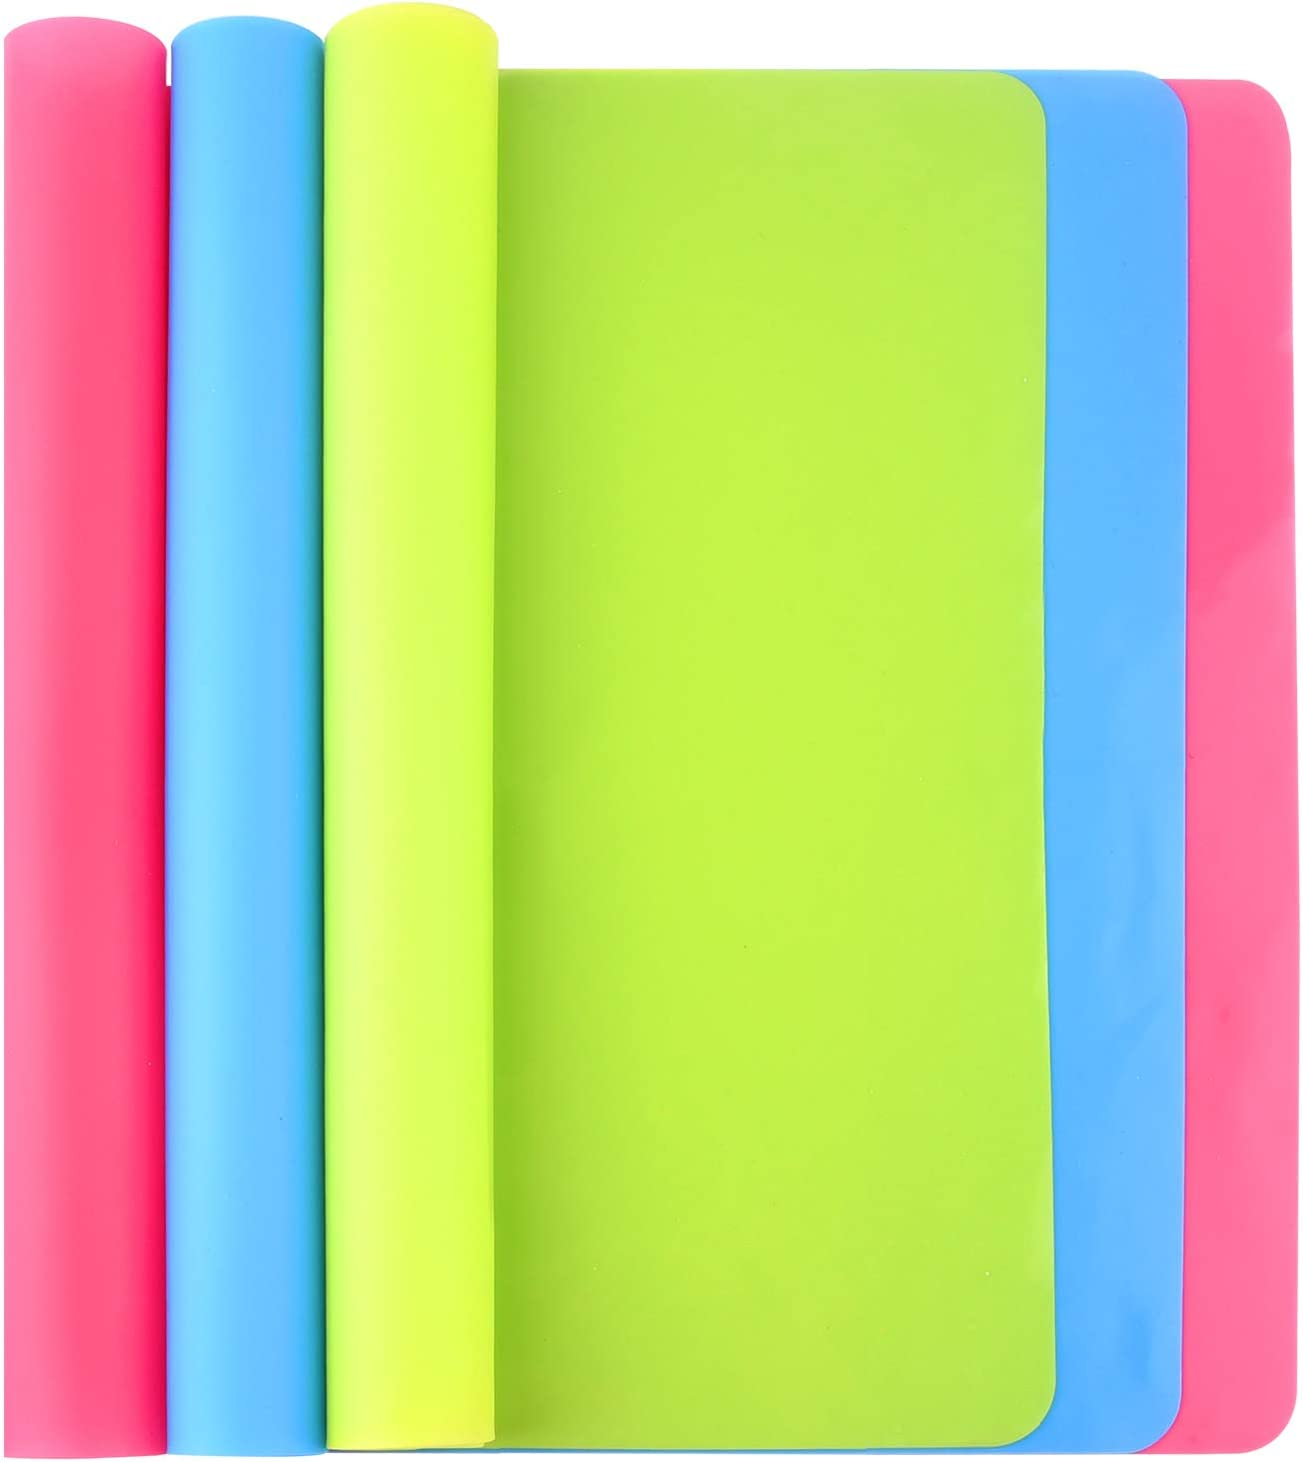 FEPITO 3PCS A3 Large Fort Worth Mall Silicone Sheet M for low-pricing Jewelry Crafts Casting